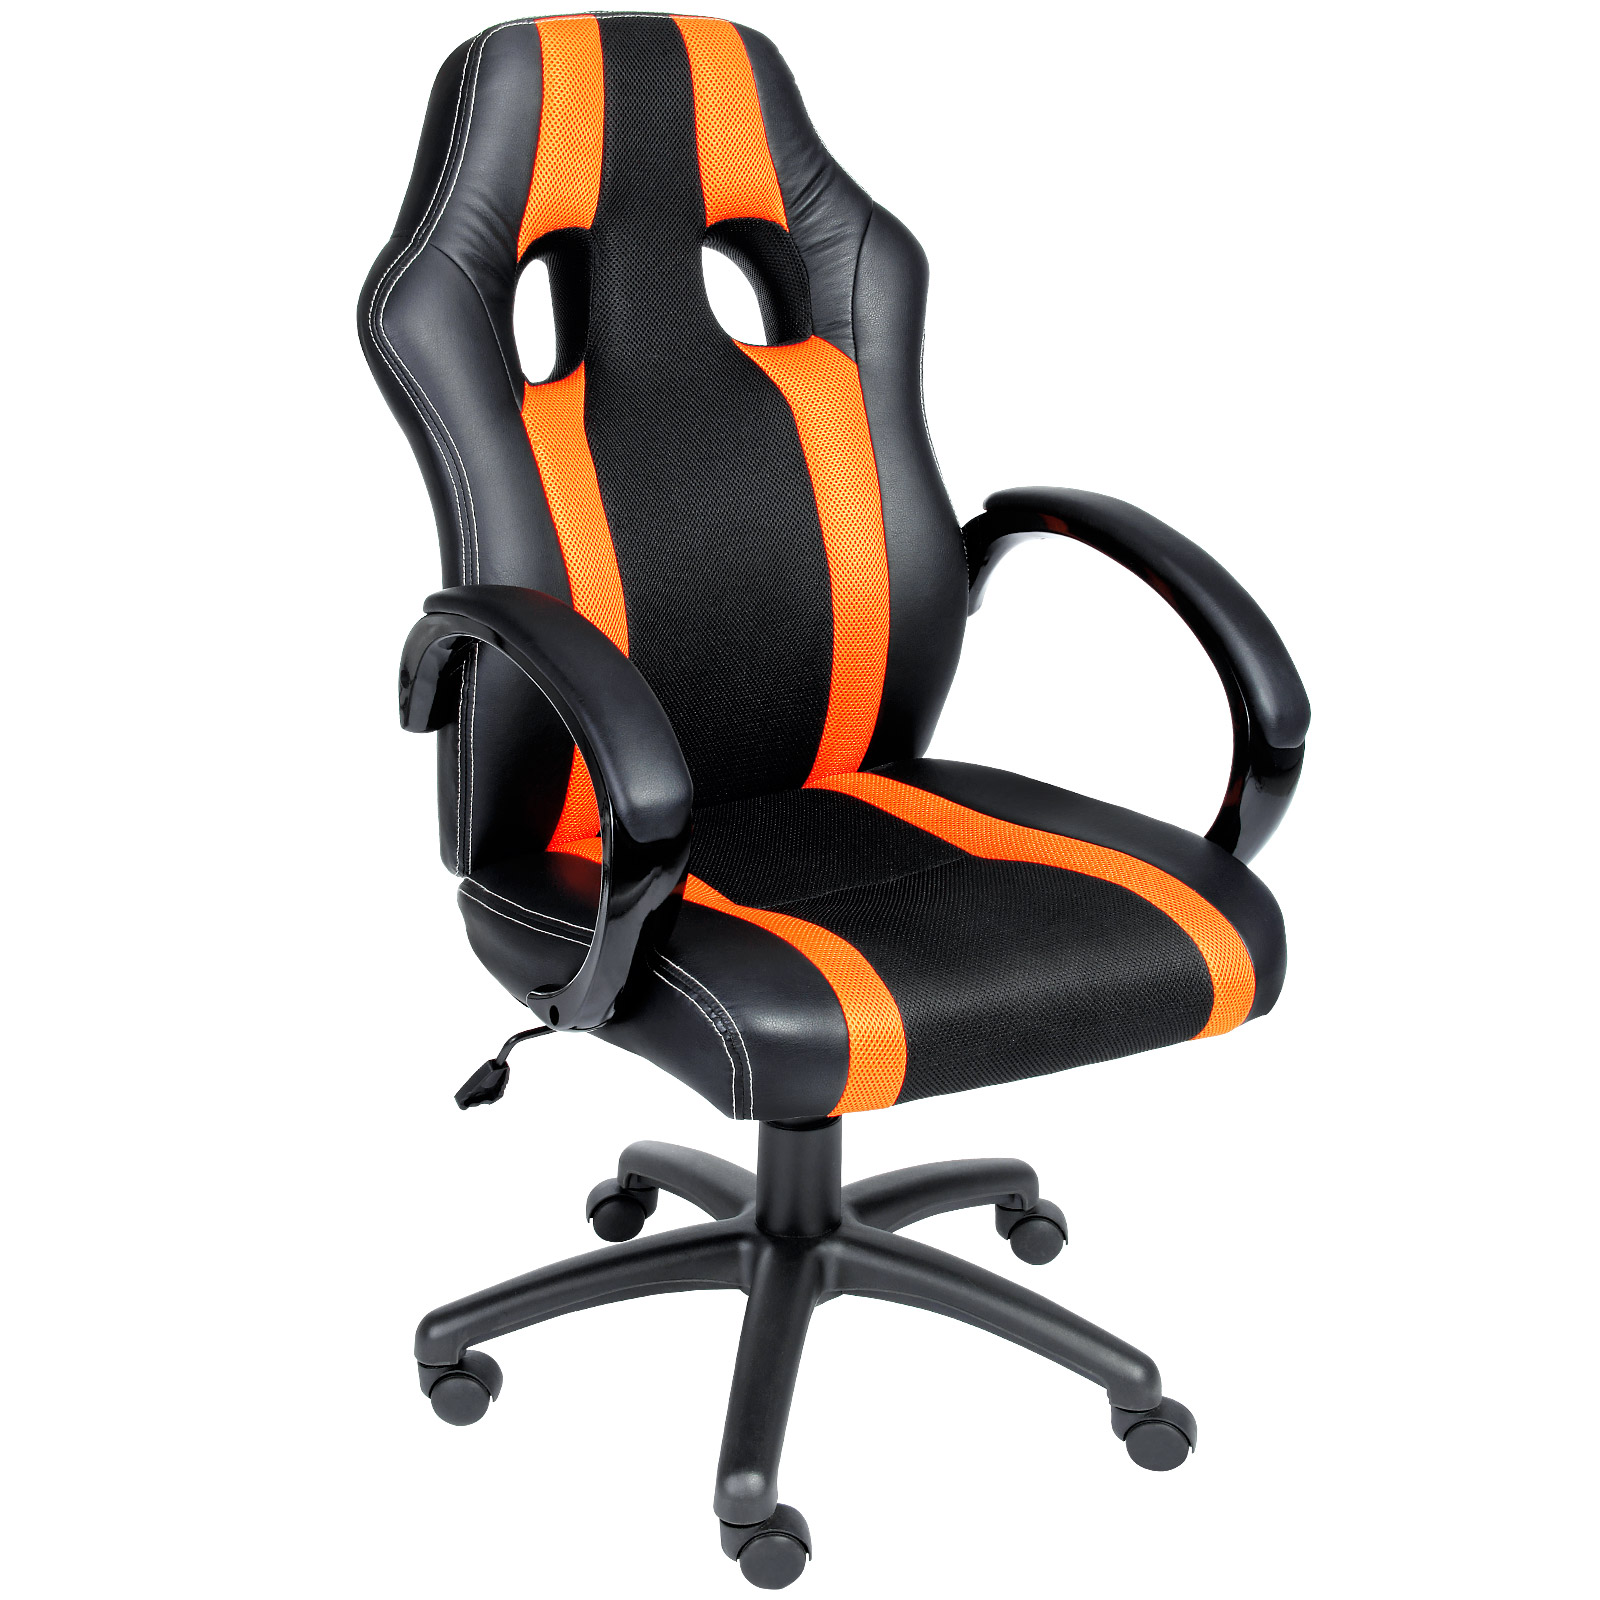 Siege sport 51 images si ge auto nautilus elite for Chaises longues confortables